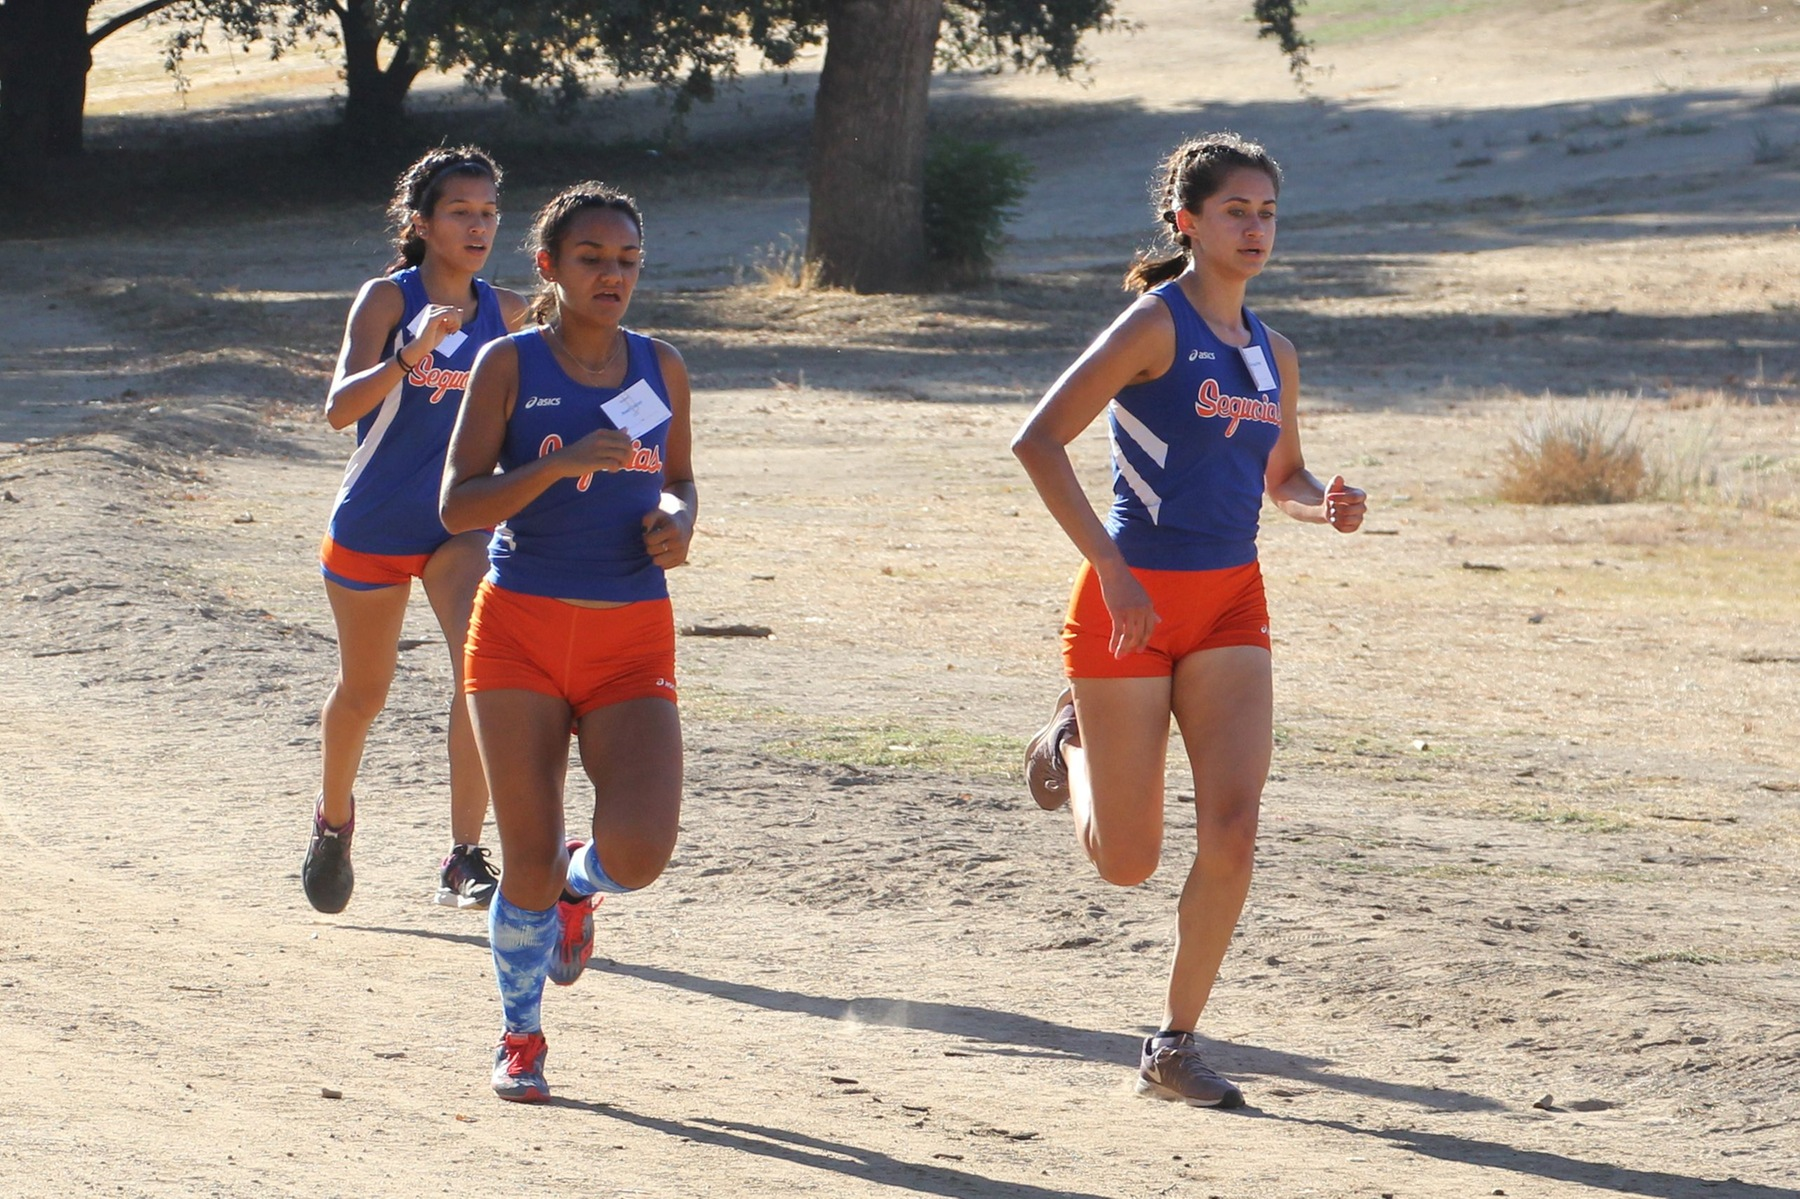 Lady Giants Dominate at Conference Championships